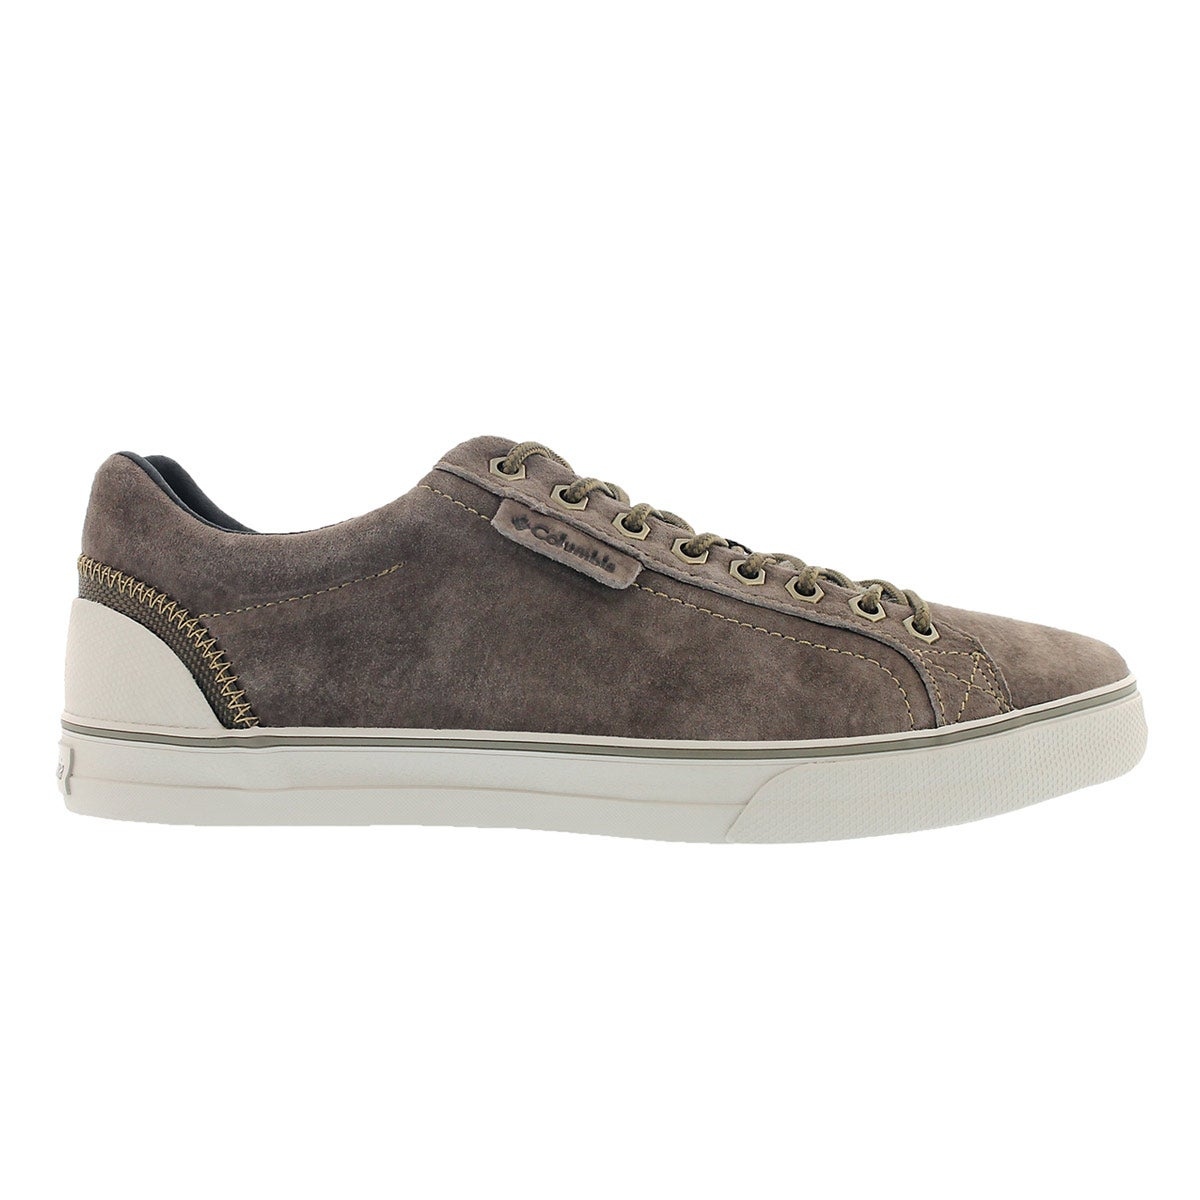 Mns Vulc Camp 4 Winter mud casual oxford